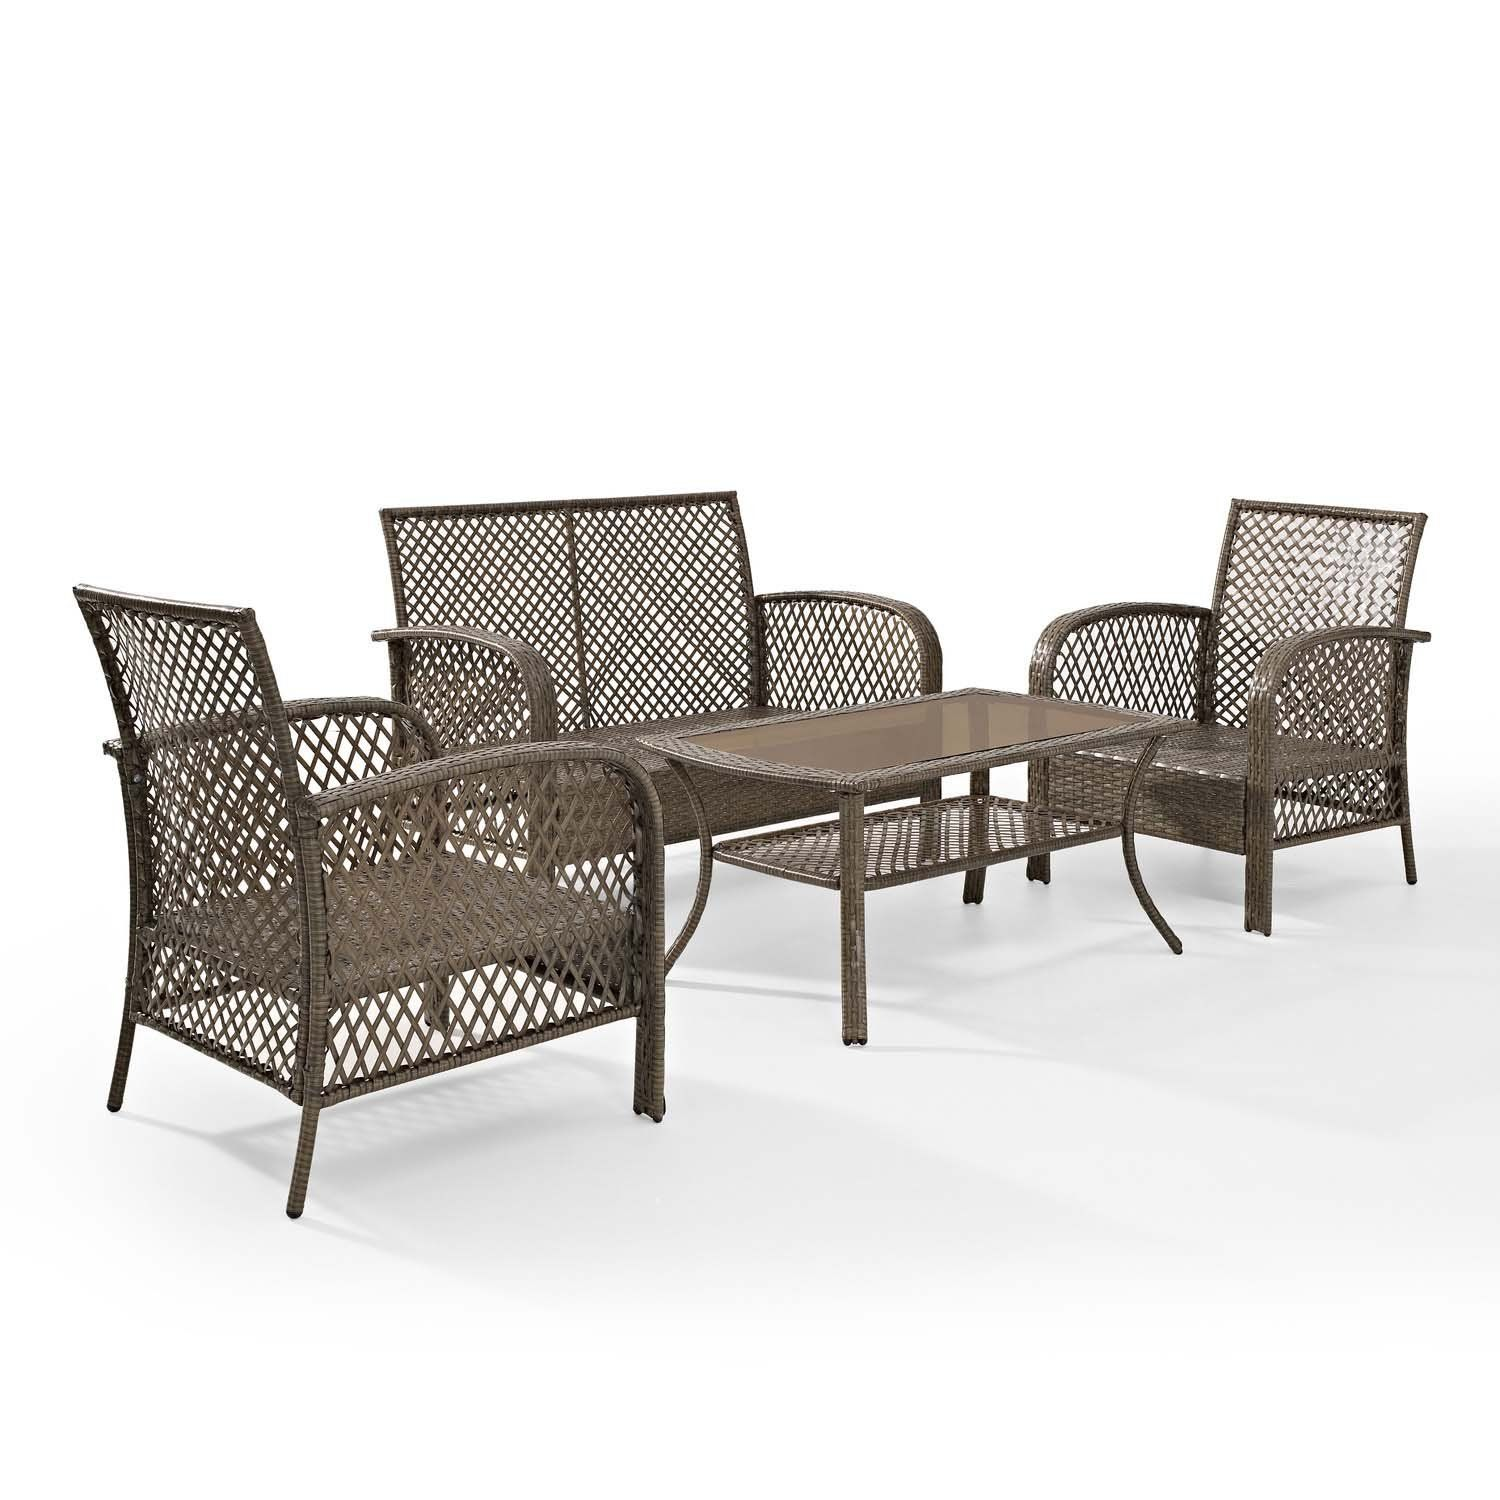 Tribeca 4 Piece Deep Seating Group Outdoor Patio